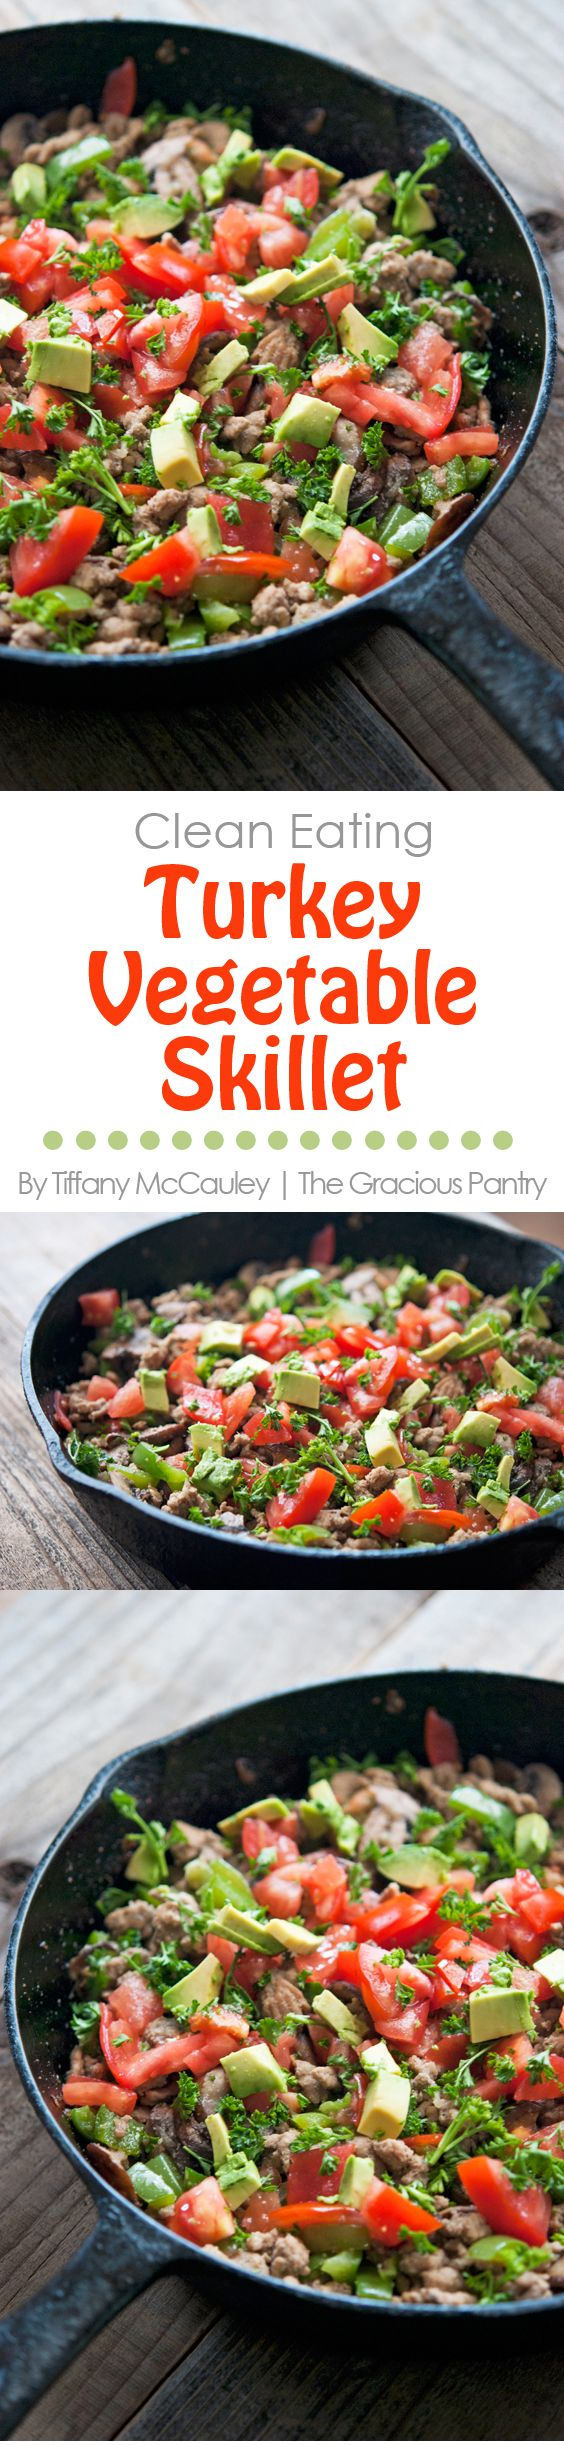 Clean Eating Recipes   Turkey Vegetable Skillet Recipe   One Pot Meals   Skillet Meals   Healthy Dinners ~ http://www.thegraciouspantry.com